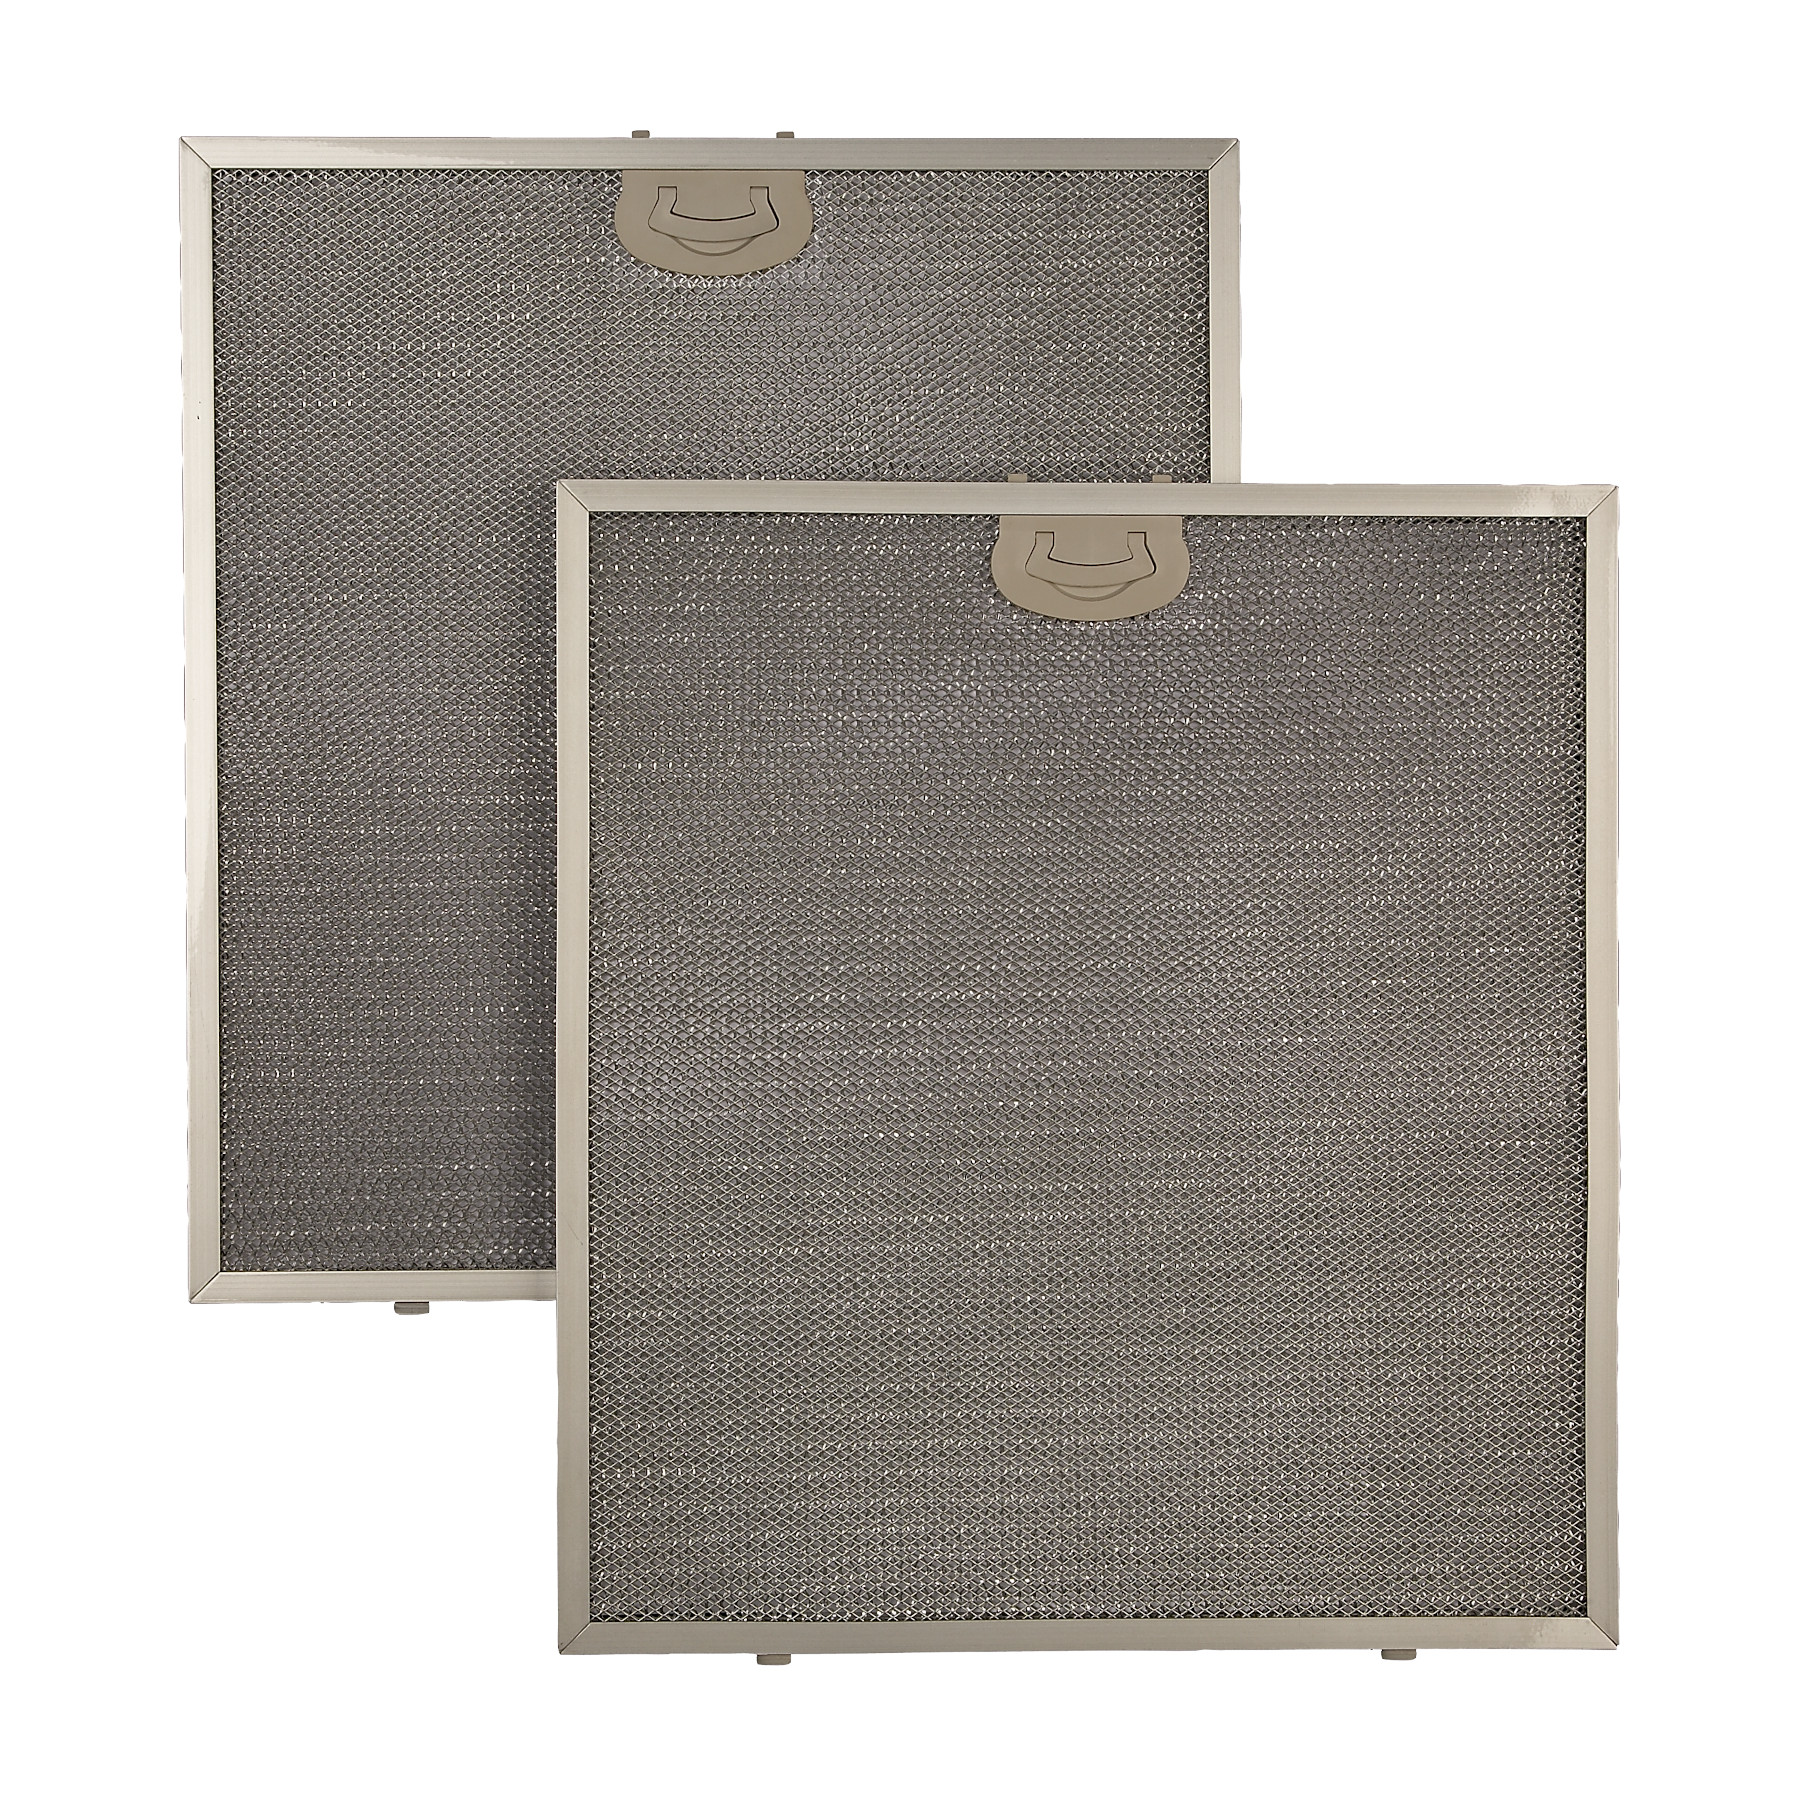 Aluminum Replacement Grease Filter with Antimicrobial Protection for 36-Inch QP1 Series